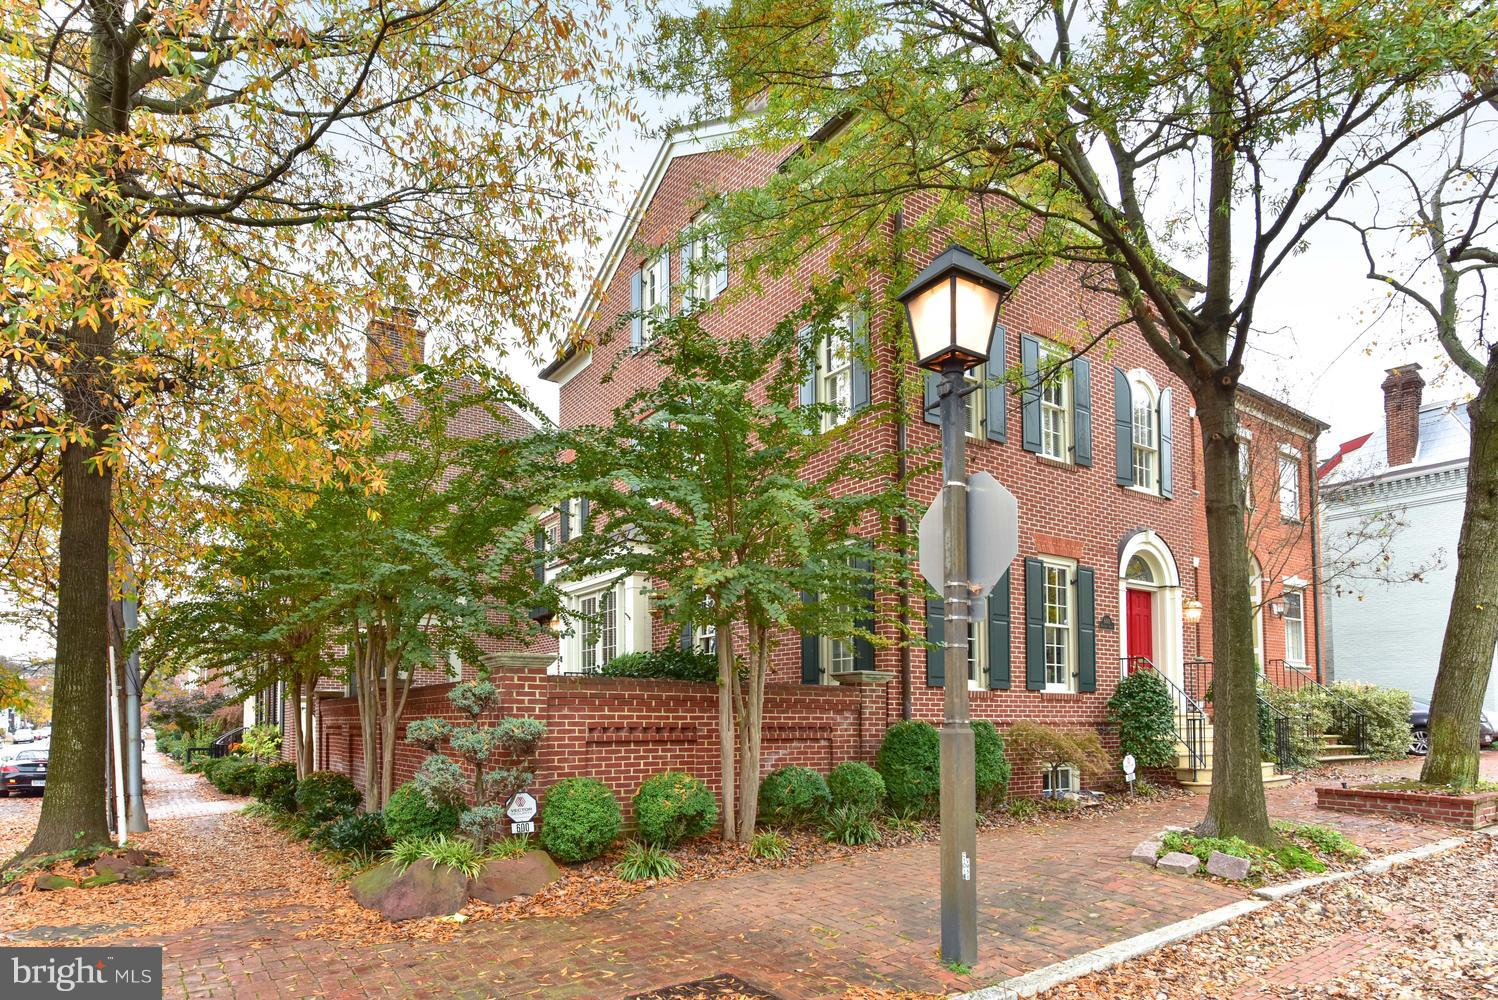 The stately brick Alexandrian at 600 Princess Street is sited proudly off Old Town~s historic cobblestone street.  Ascend a gracefully curving front staircase with wrought iron handrail to enter through a double front door, illuminated above by an arched transom window. The foyer's soaring ceiling draws the eye upward to the glossy hardwood staircase, as well as offers gracious entry to a well-appointed sitting room with a marble surround gas fireplace, sunny window exposure and handsome columns framing the room. Straight ahead, take a direct path to the main floor half bath or open the door discreetly closeting the elevator.  From the sitting room, enter the dining room surrounded by elegant wainscoting. It's tucked neatly between the kitchen -- accessible by French doors -- and the two-level brick courtyard. The dining room looks into the top level, with a pergola that beckons for blooming flowers and trailing vines. On the second level, a romantic fountain promises a soothing backdrop for entertaining or a quiet morning spent with coffee and newspaper. The kitchen is outfitted with every device and storage system a contemporary cook needs. While the gleaming copper range hood is the show-stopping focus of the room, utilitarian tools like a trash compactor, custom cabinets and drawers, wood-paneled Sub-Zero fridge and deep sink will serve daily needs from easy meal prep to sufficient stashing of fresh and perishable pantry goods. Access the garage through the kitchen, or step down a flight of stairs into the finished basement.  A bank of windows ensures this subterranean space never goes dark, and the gas fireplace ensconced within a rustic stone wall ensures extra glow on the darkest winter days. This space is idea for casual entertaining, with its fully equipped wet bar. It could also serve a family~s needs for guest quarters (a full bath is just around the corner from the bar) or even a quiet office or fitness space. On the second floor, a master suite haven awaits behind two sets of French doors. One set opens into a well-sized sitting room with a wall of plantation shutter-dressed windows that stands opposite a wall with built-in bookcases. Between the two walls stands the home~s third fireplace, making this space a perfect reading room, office, sanctuary -- or even nursery, given the proximity to the master bedroom. Storage and luxury abound in this carefully planned space. Two custom shelving areas offer four seasons~ closet storage, and a sunken bathroom is a spa-like retreat with its deep whirlpool tub, glass-enclosed shower, expansive double vanity countertop, and private water closet complete with bidet. Vertical linen and toiletries storage completes the space -- and a pastoral fresco above the tub elevates it. On the top floor of the house, two additional bedrooms and a full bath accommodate the household's growing needs. Windows dressed with plantation shutters filter sunlight, and generous closet space (as well as attic access) keep clothes, luggage and other items organized. The street-facing room features built-in shelf, cabinet and desk space to streamline work and storage space. With Old Town's bustling dining and shopping scene mere blocks away, 600 Princess is well-positioned for evenings out. And mornings out are a snap, too, with cafes in quick walking distance and easy access to major roads leading into Washington.  Access the Metro system by Old Town's cheerful trolley or bus system.  Enjoy a view of the Potomac by strolling a short distance to the waterfront, where the Mt. Vernon trail joins downtown sidewalks and offers the perfect route for a run or to walk the family dog. **WALK THROUGH THE HOME WITH OUR VIRTUAL TOUR IN VIDEO SECTION**